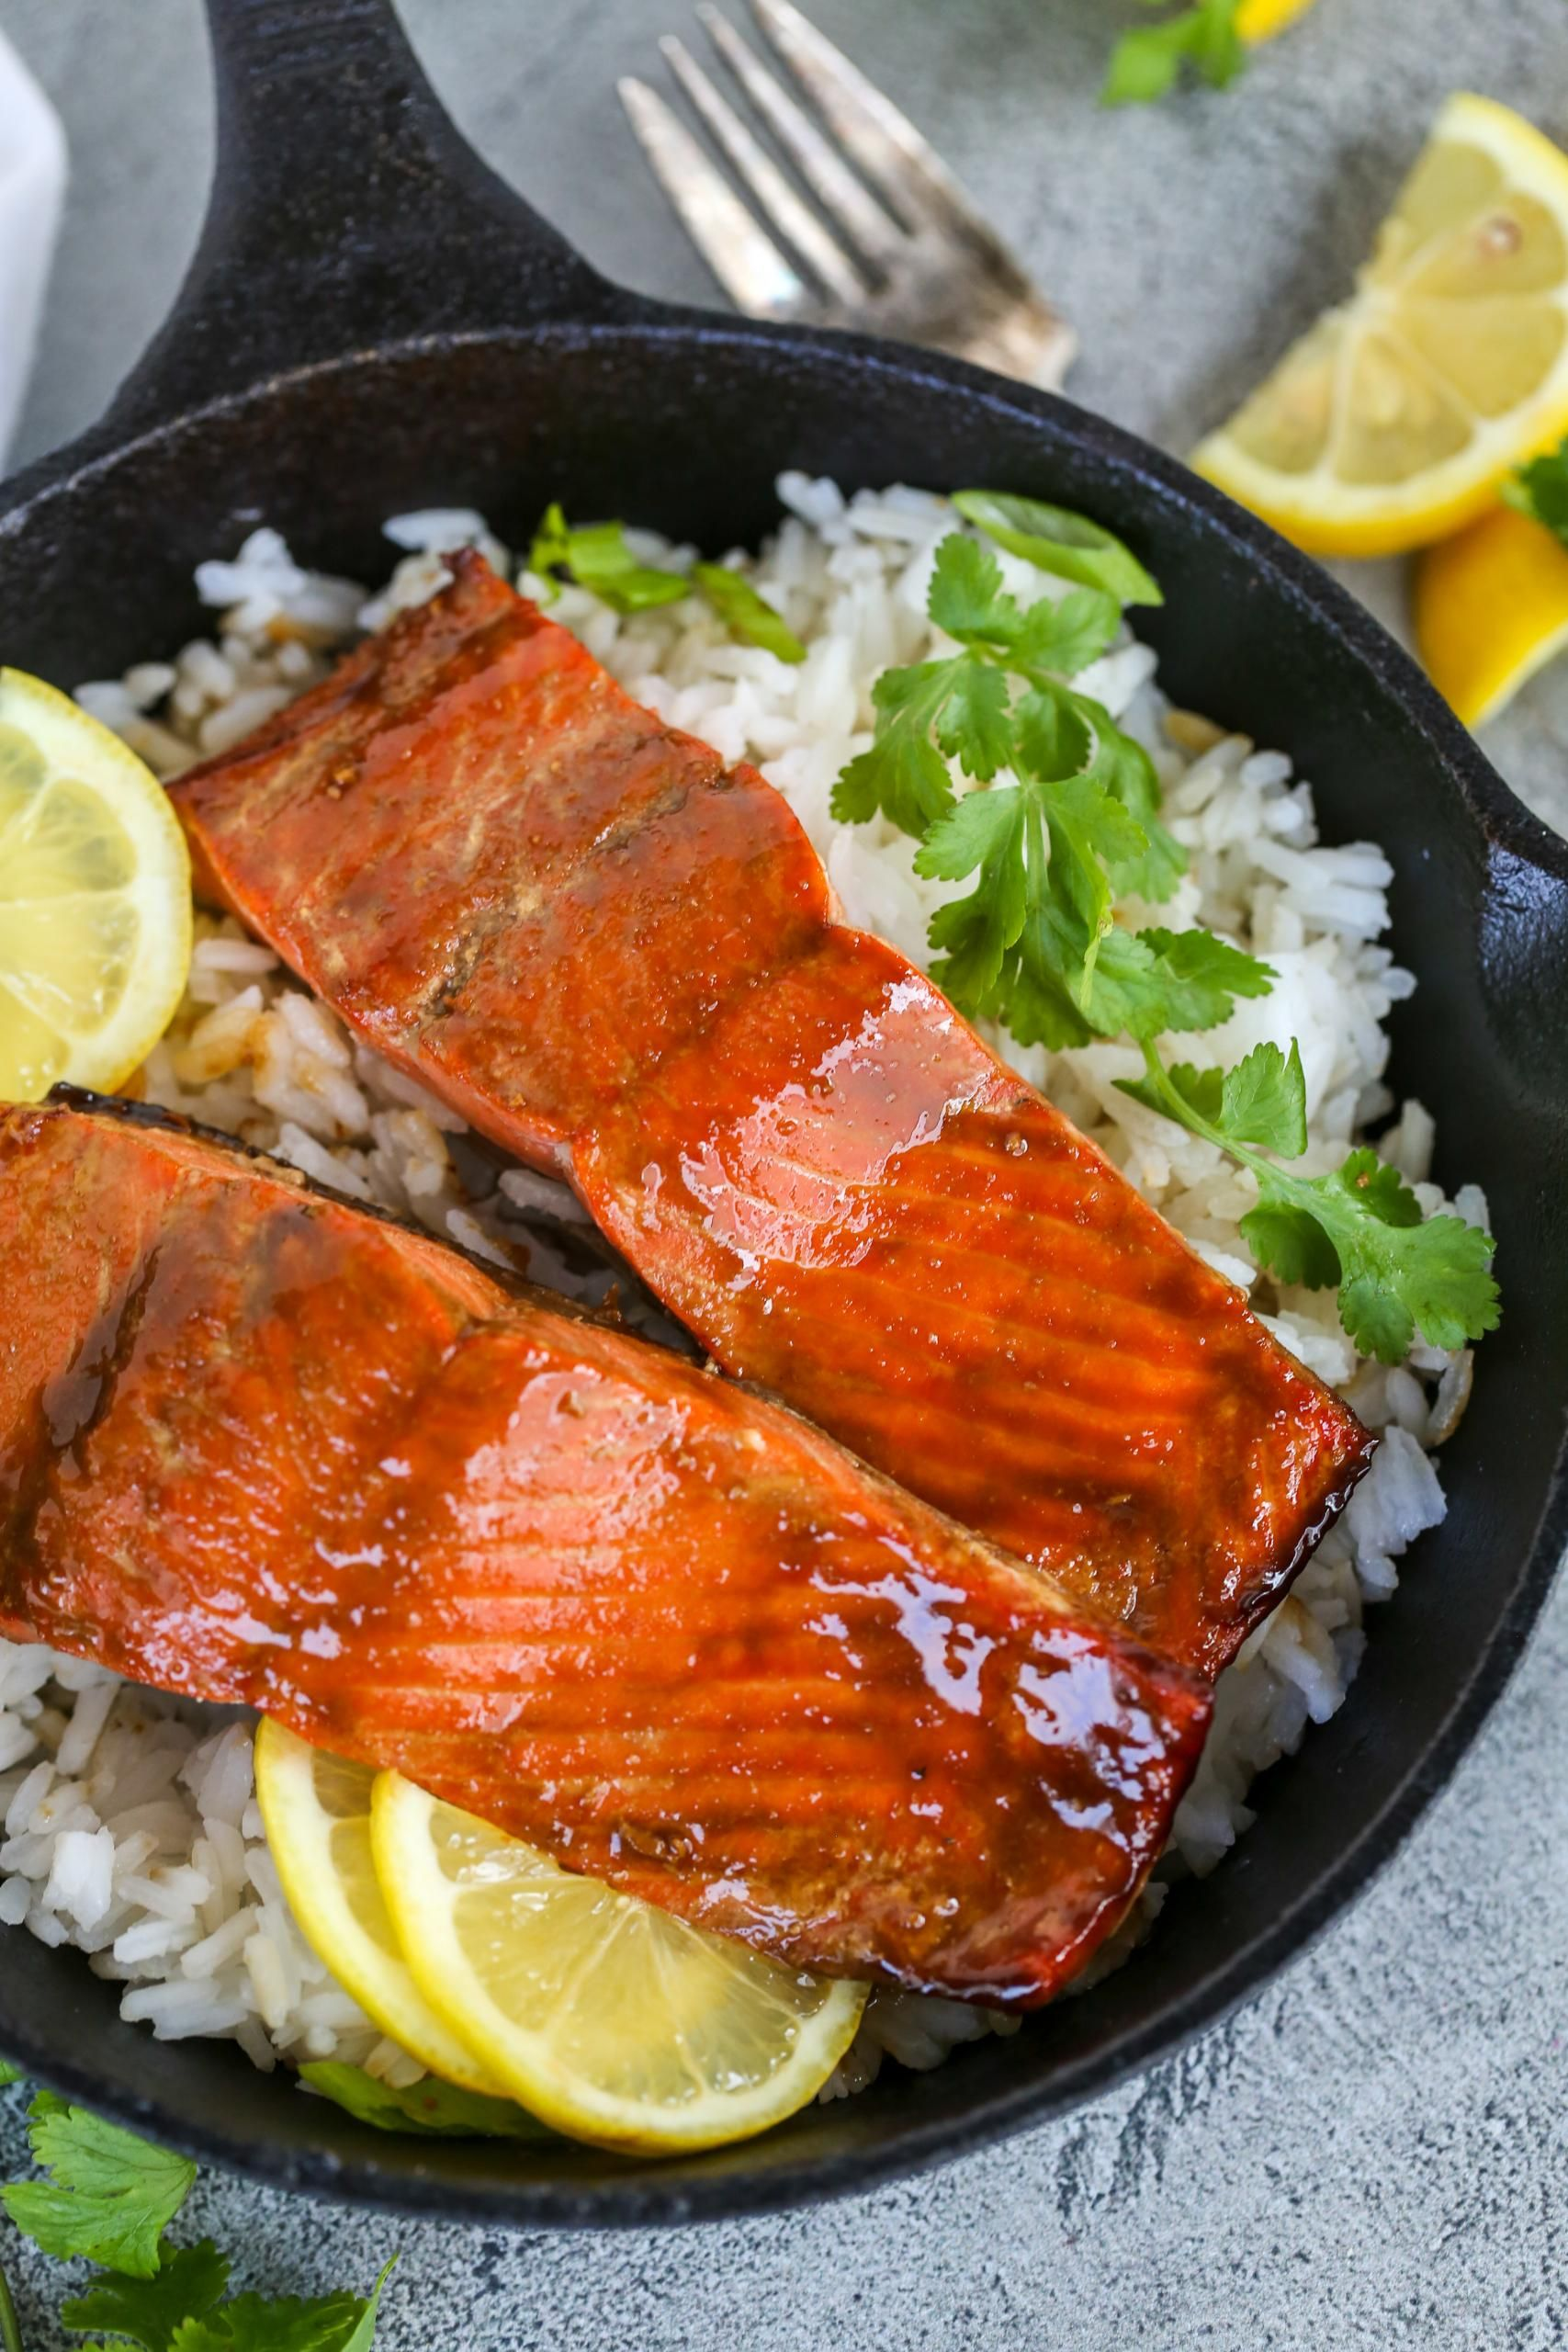 Brown Sugar Glazed Salmon Recipe - Momsdish